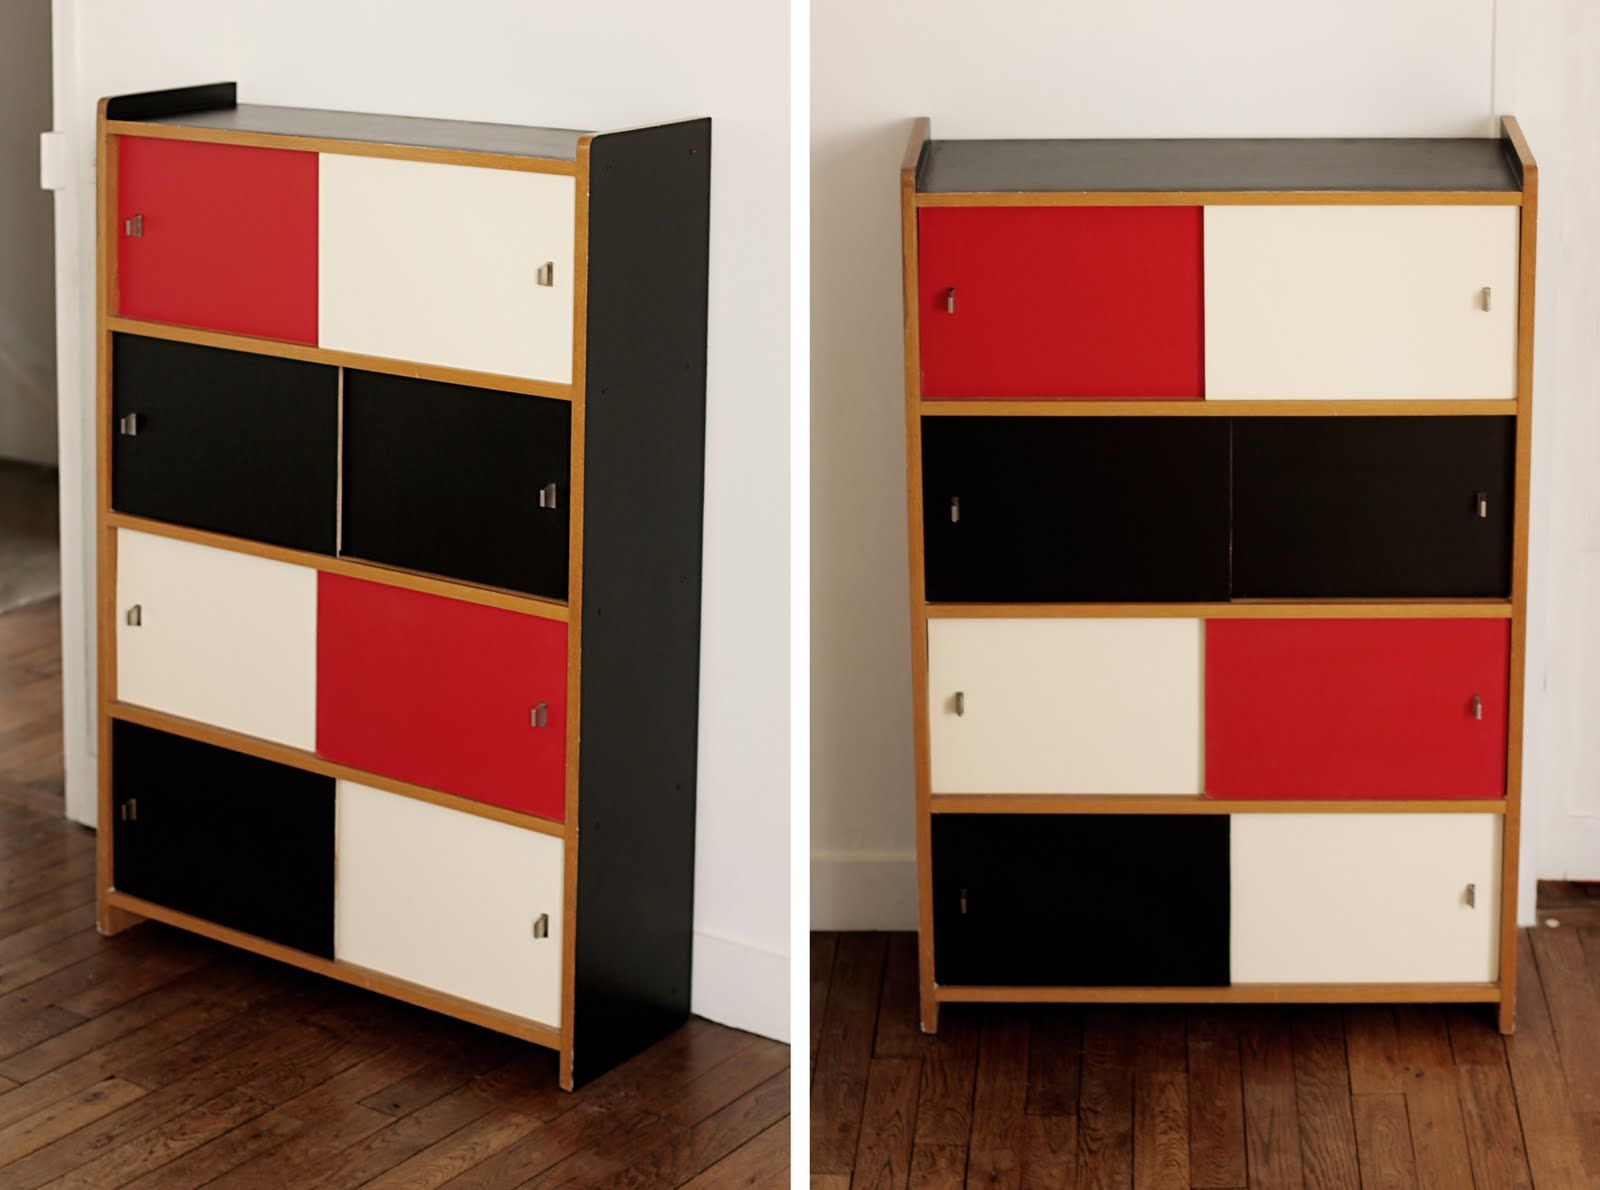 de derri re les fagots le meuble de rangement 200 euros vendu. Black Bedroom Furniture Sets. Home Design Ideas